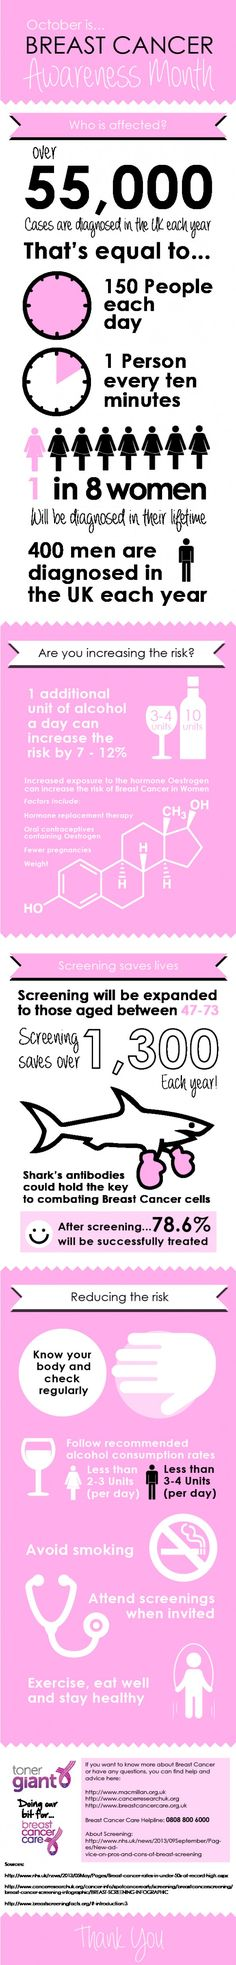 Breast Cancer Awareness Month Infographic